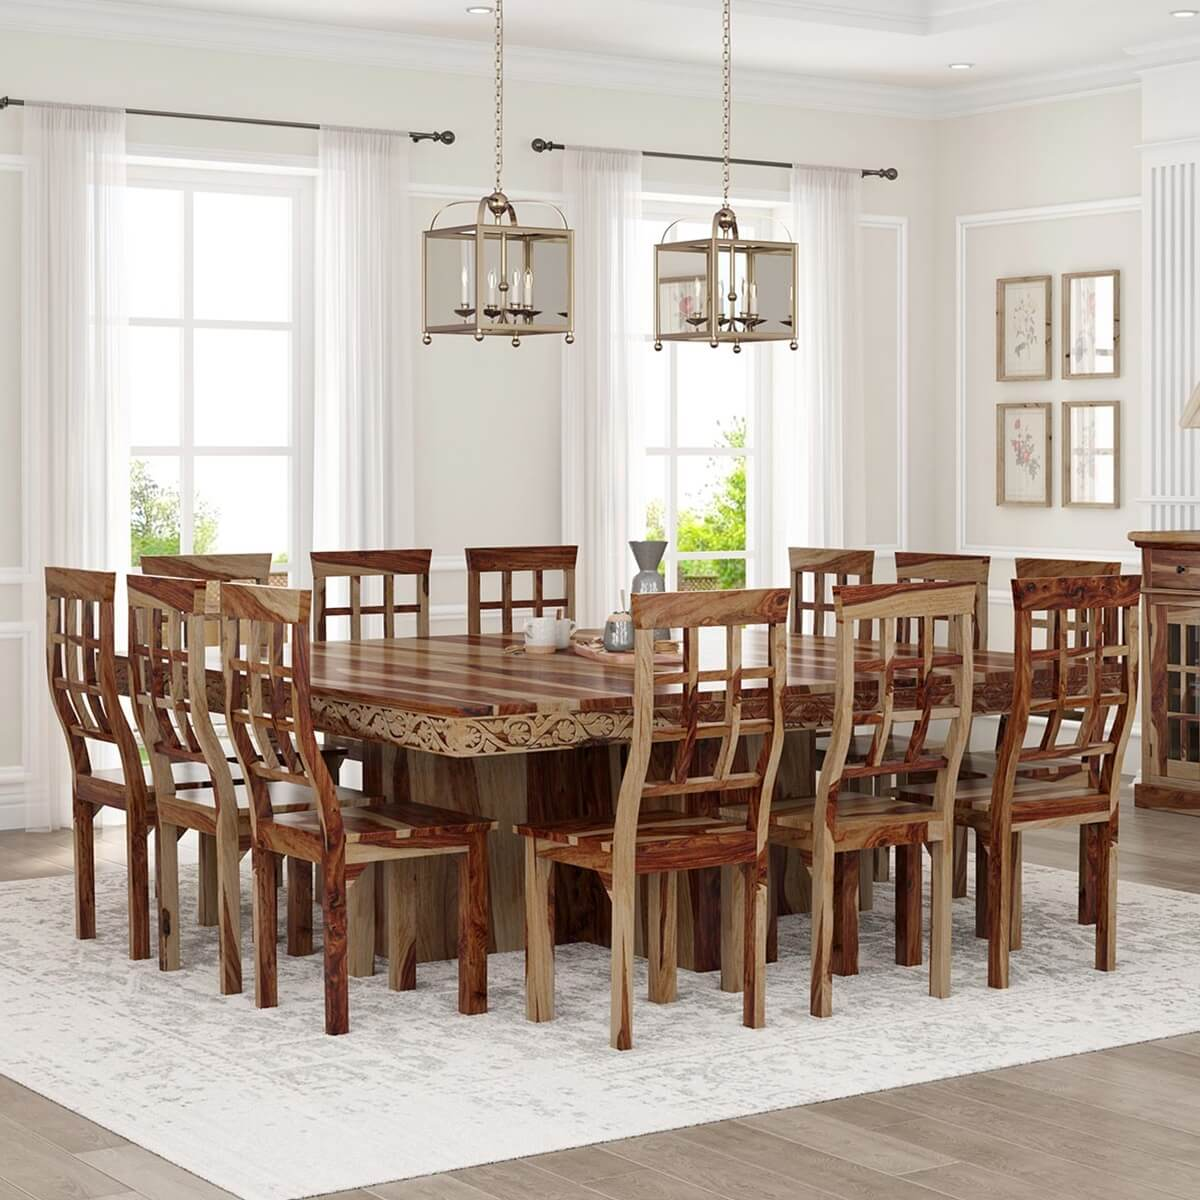 dallas ranch large square dining room table and chair set for 12. Black Bedroom Furniture Sets. Home Design Ideas